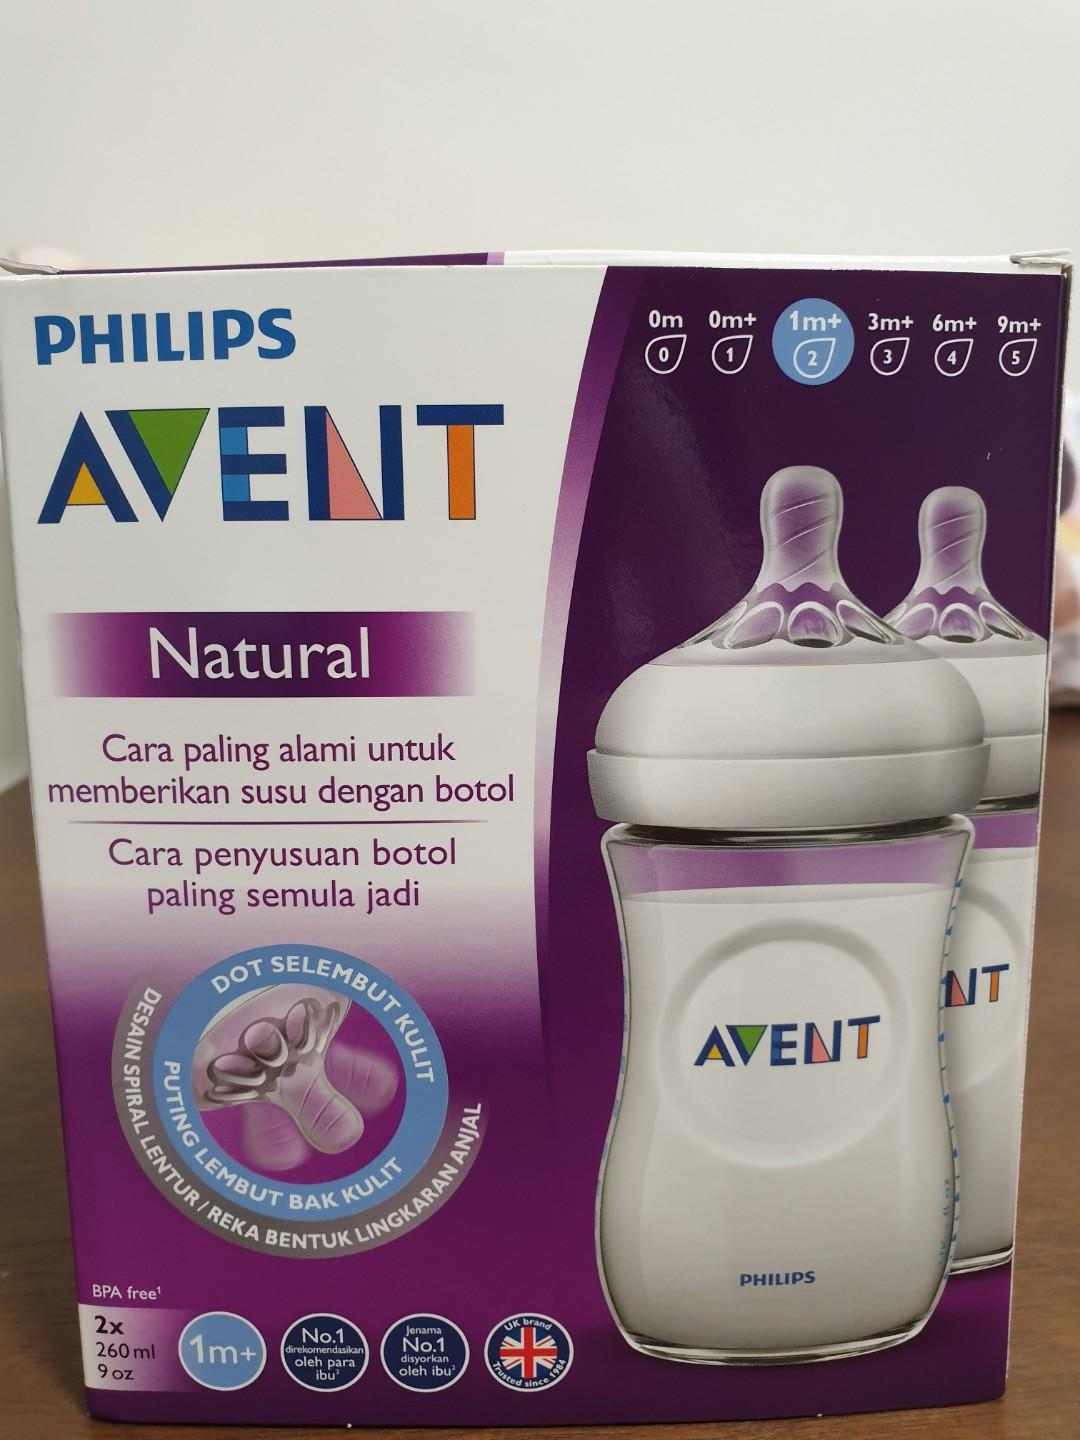 Philips Avent Natural Bottles